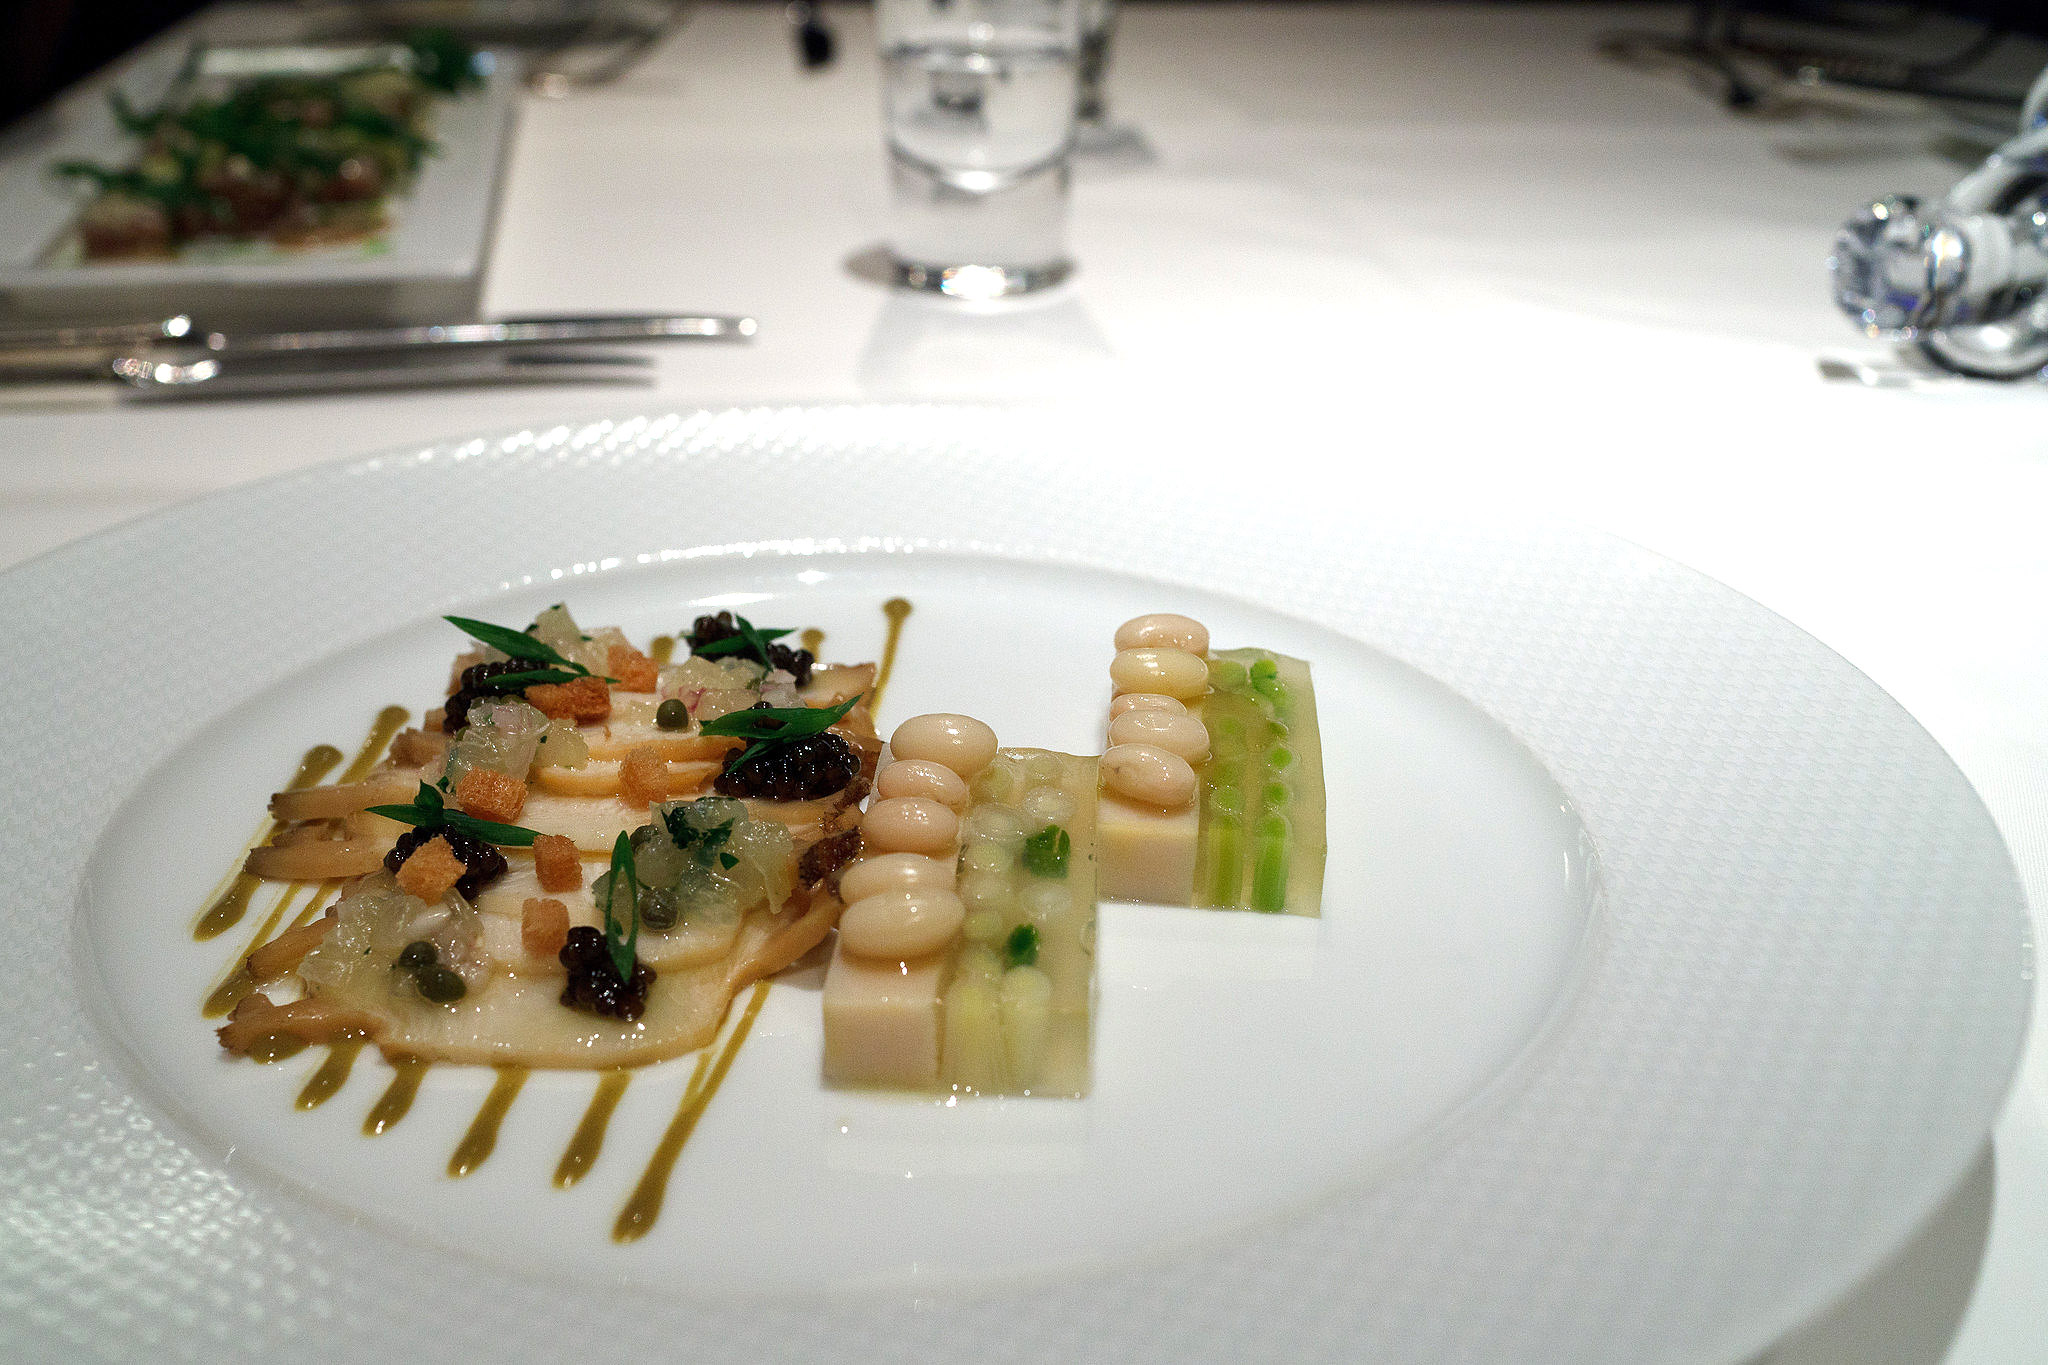 Signature, Tokyo - Warm abalone thinly sliced, white beans and leek terrine with caviar, lemon and caper, coral sauce